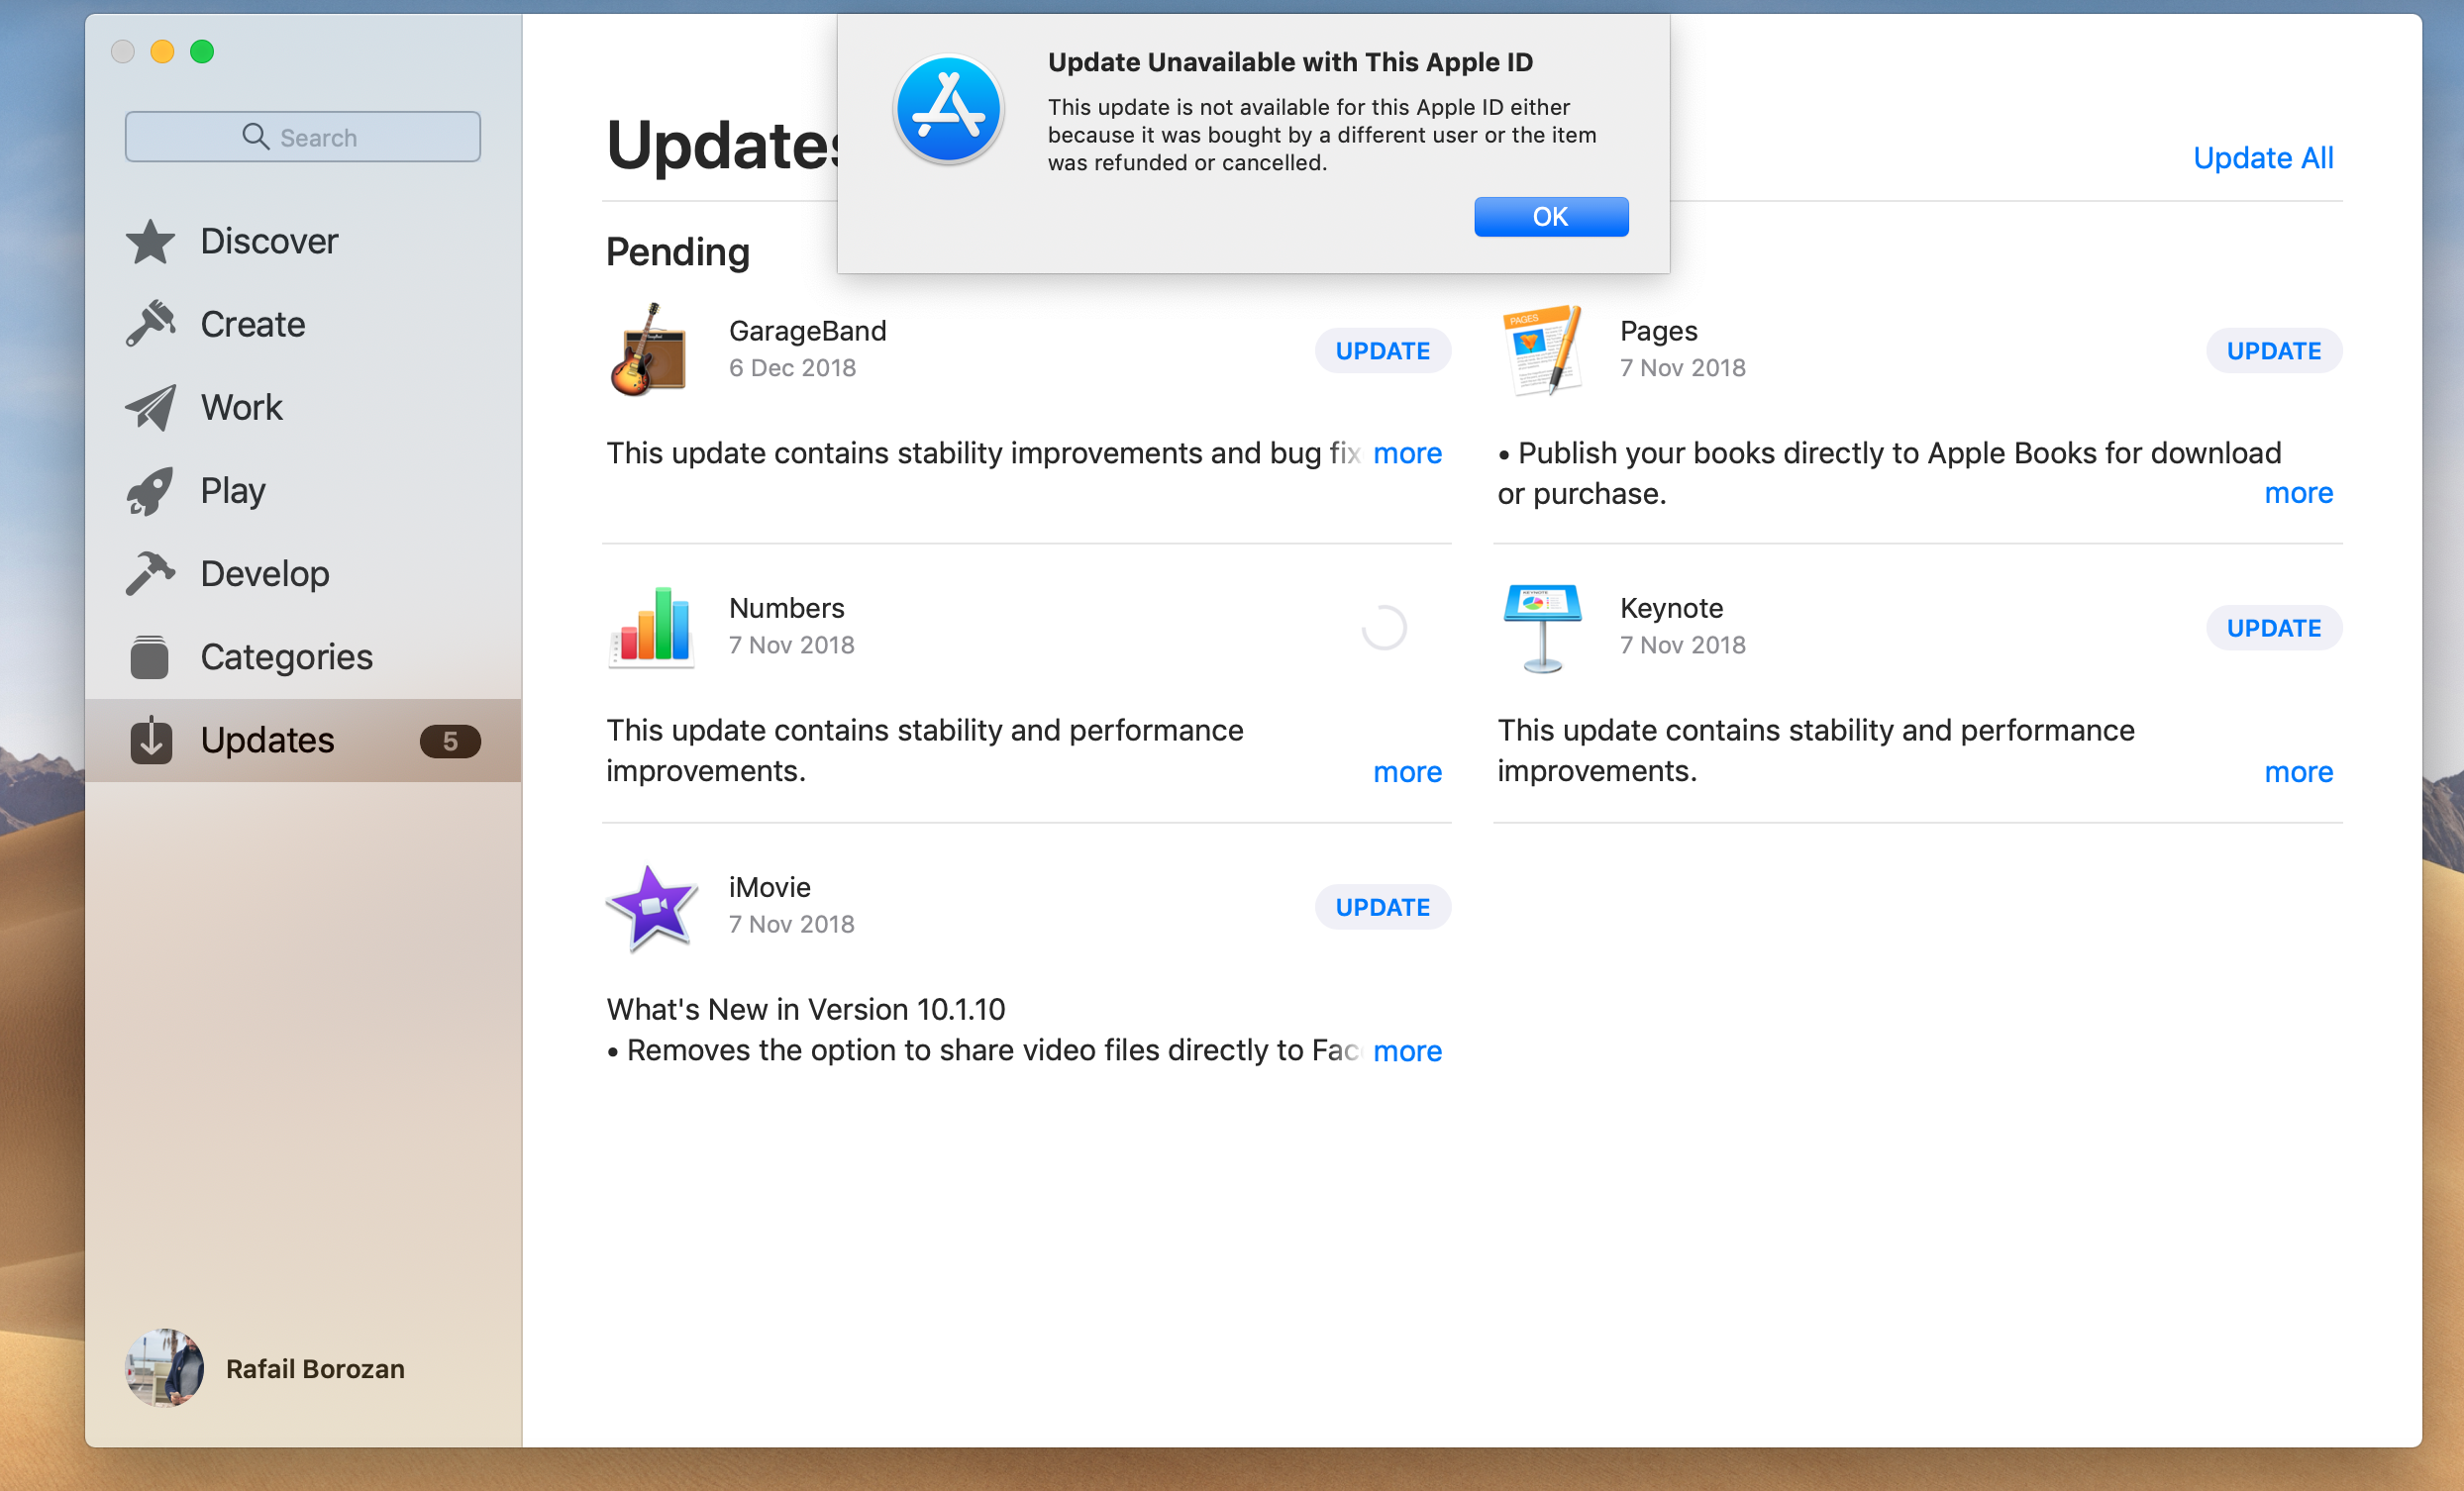 can't update apps - Apple Community